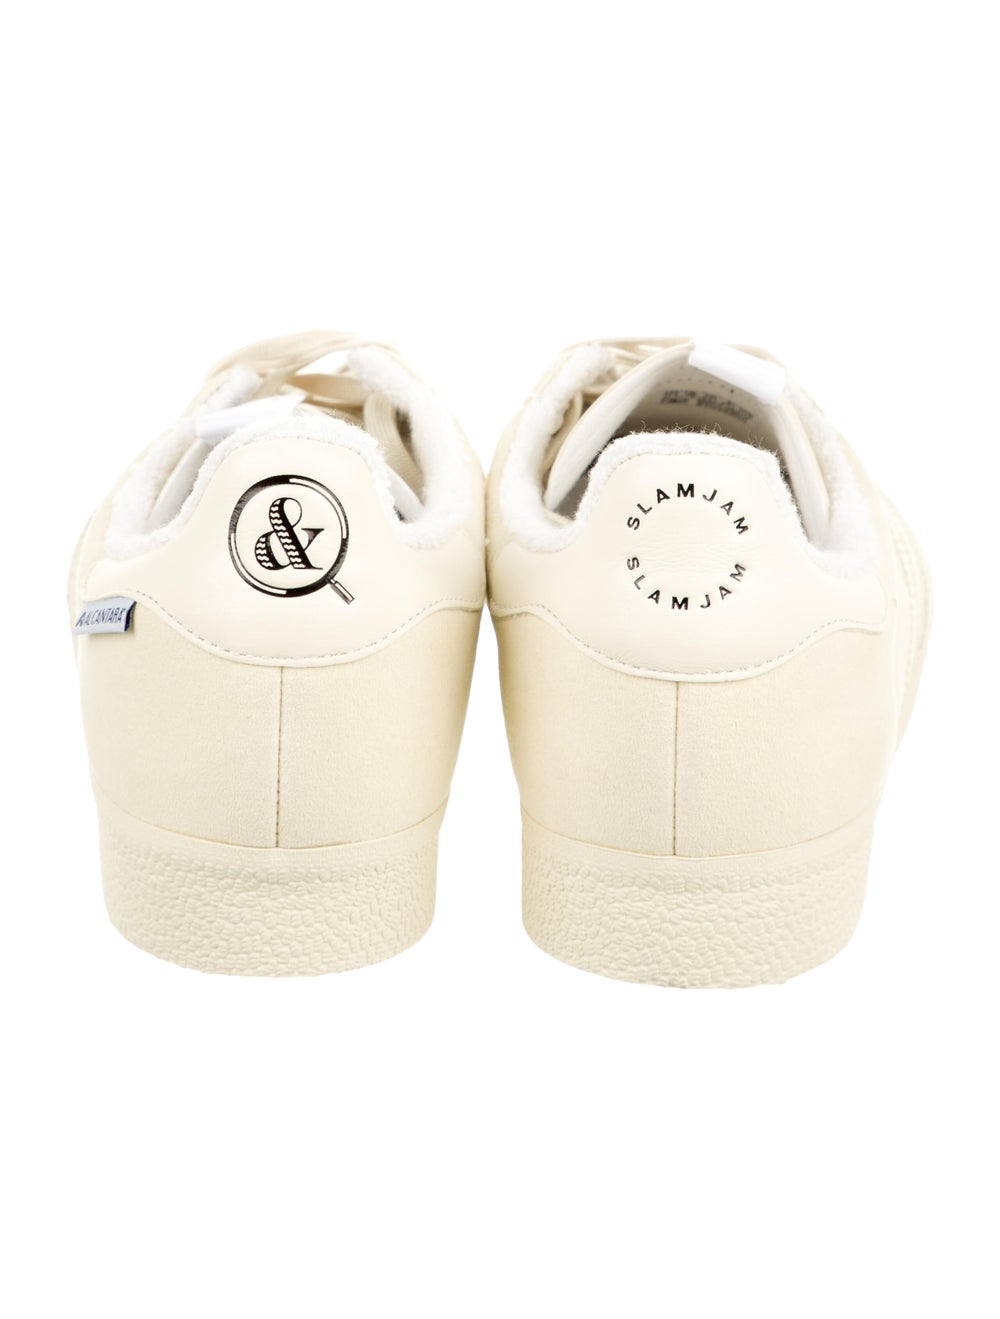 Adidas Gazelle SE Low-Top Sneakers w/ Tags - image 4